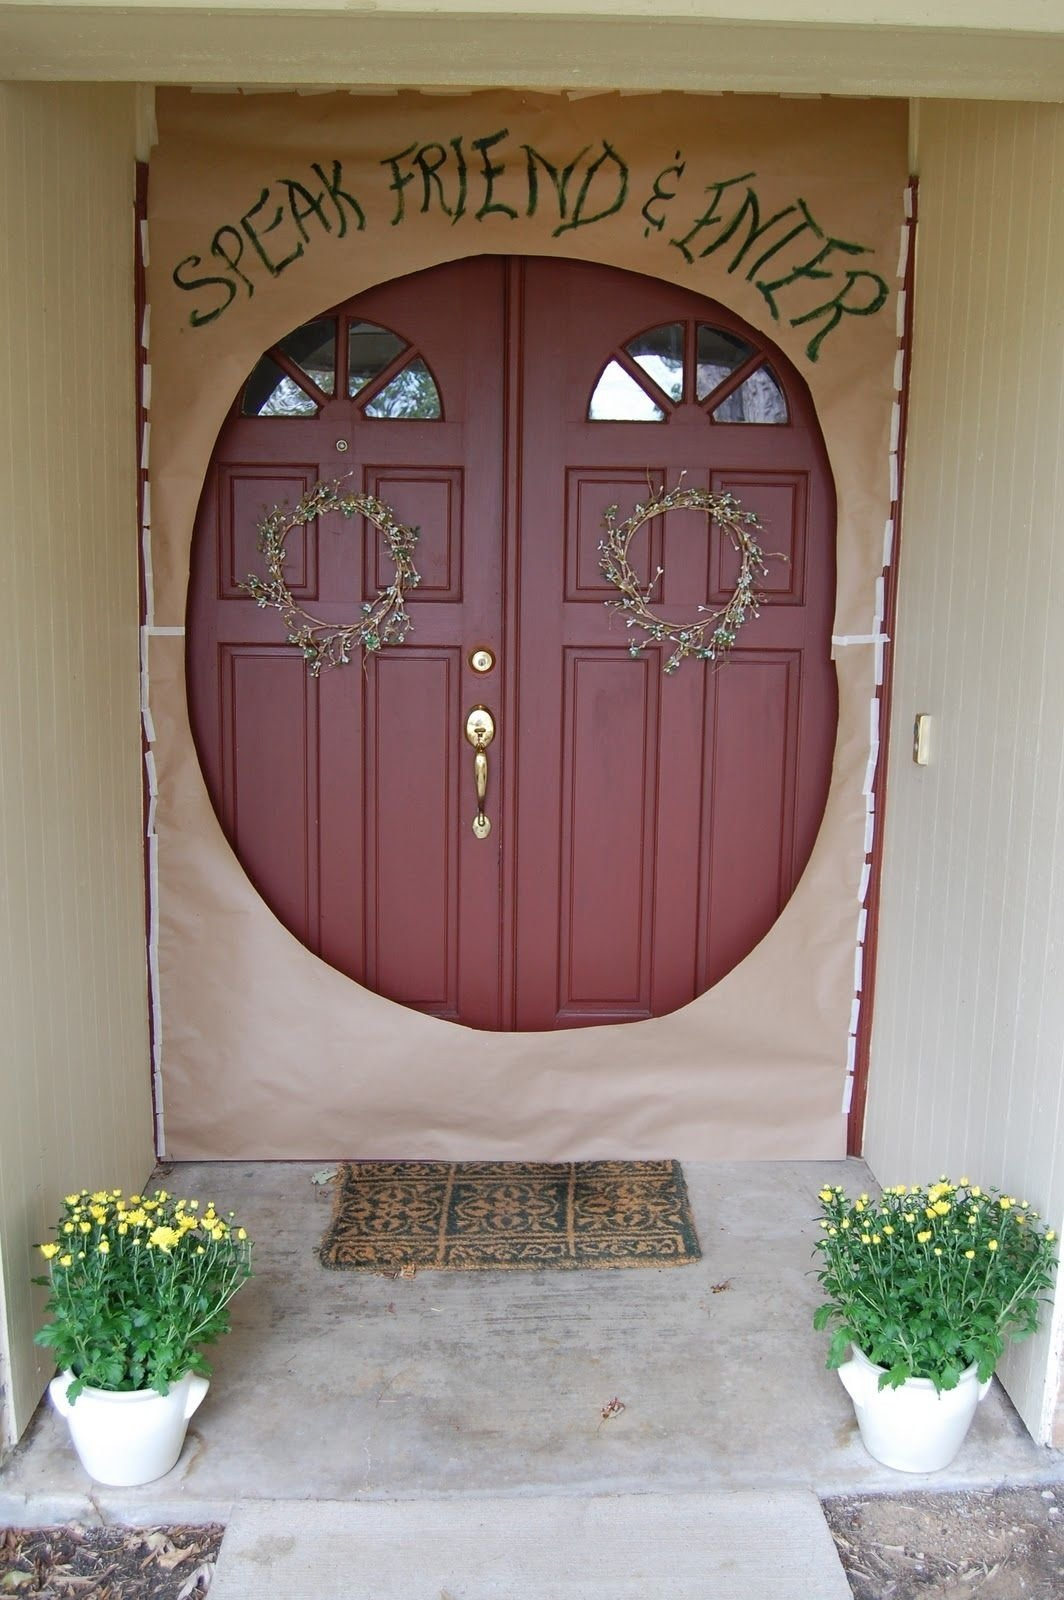 10 Pretty Lord Of The Rings Party Ideas lord of the rings birthday party door but theyre mixing their 2020